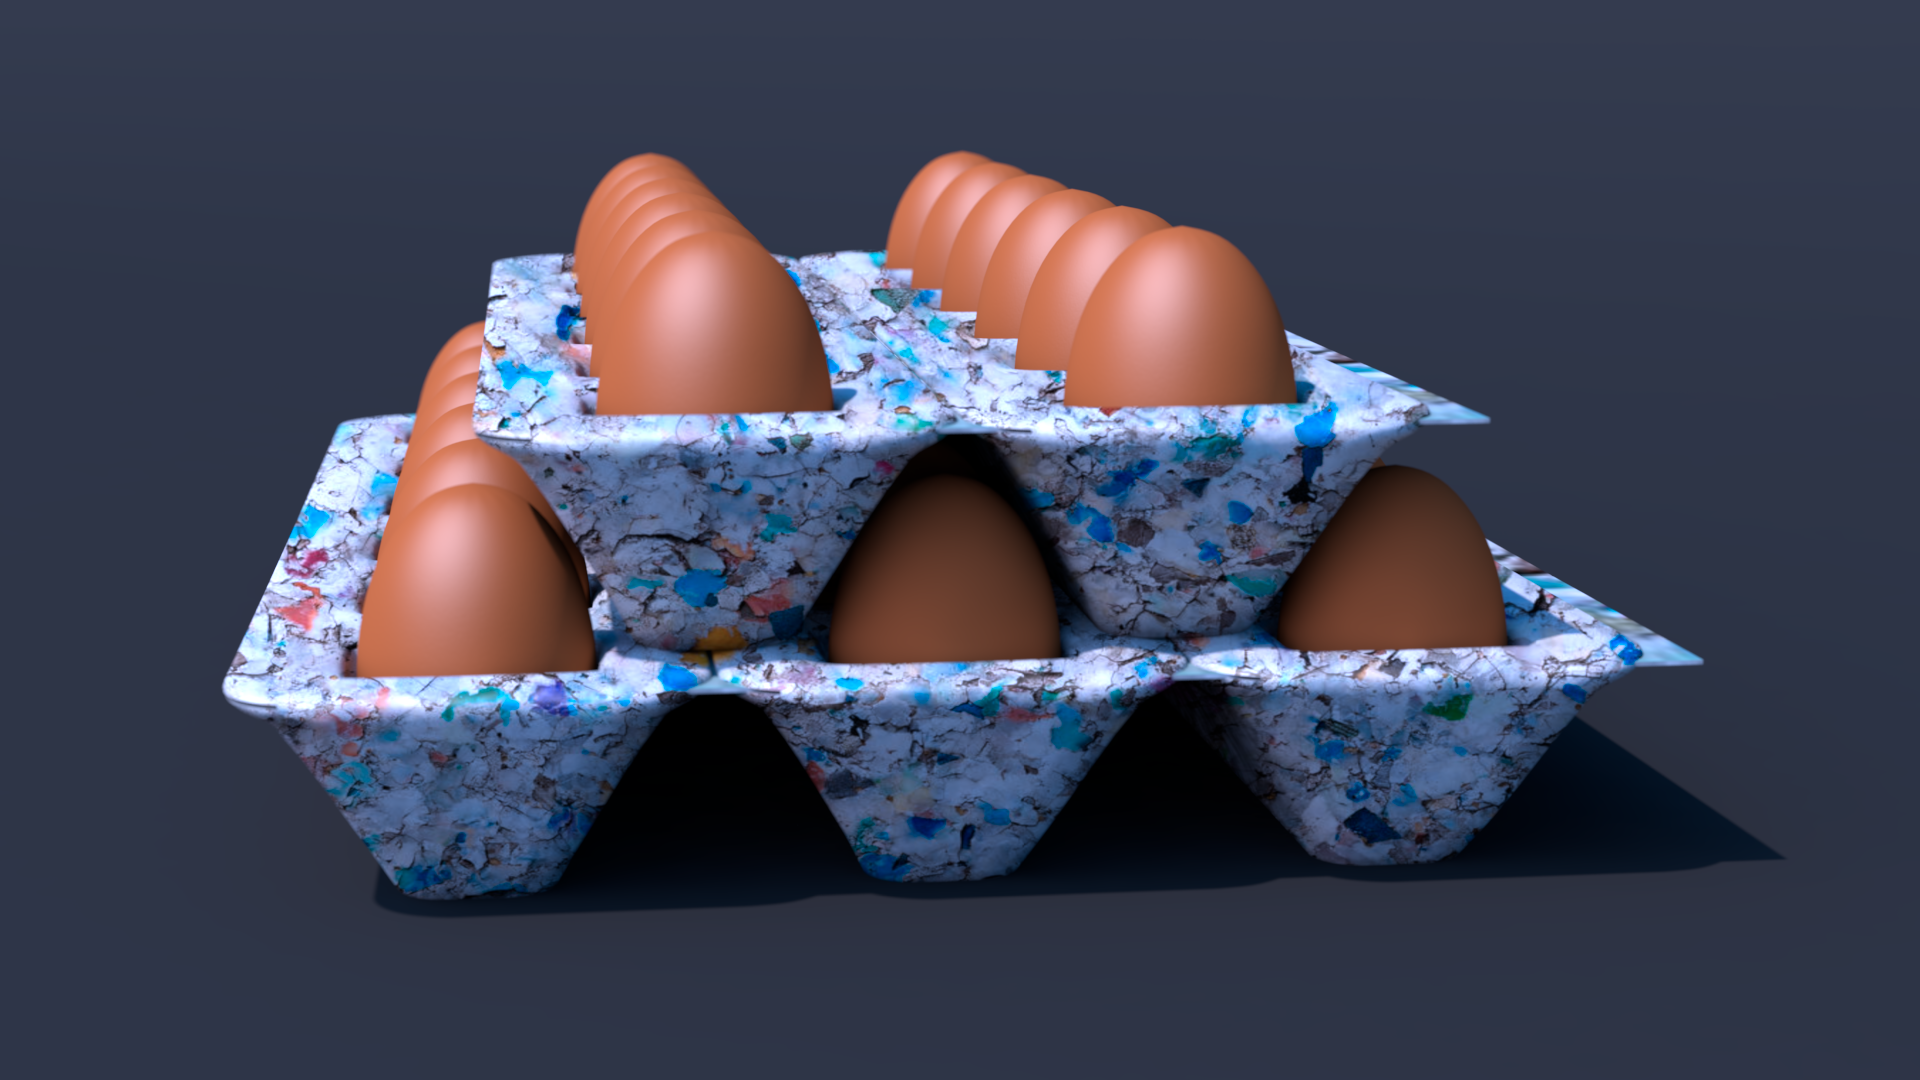 Egg Cartons Stacked